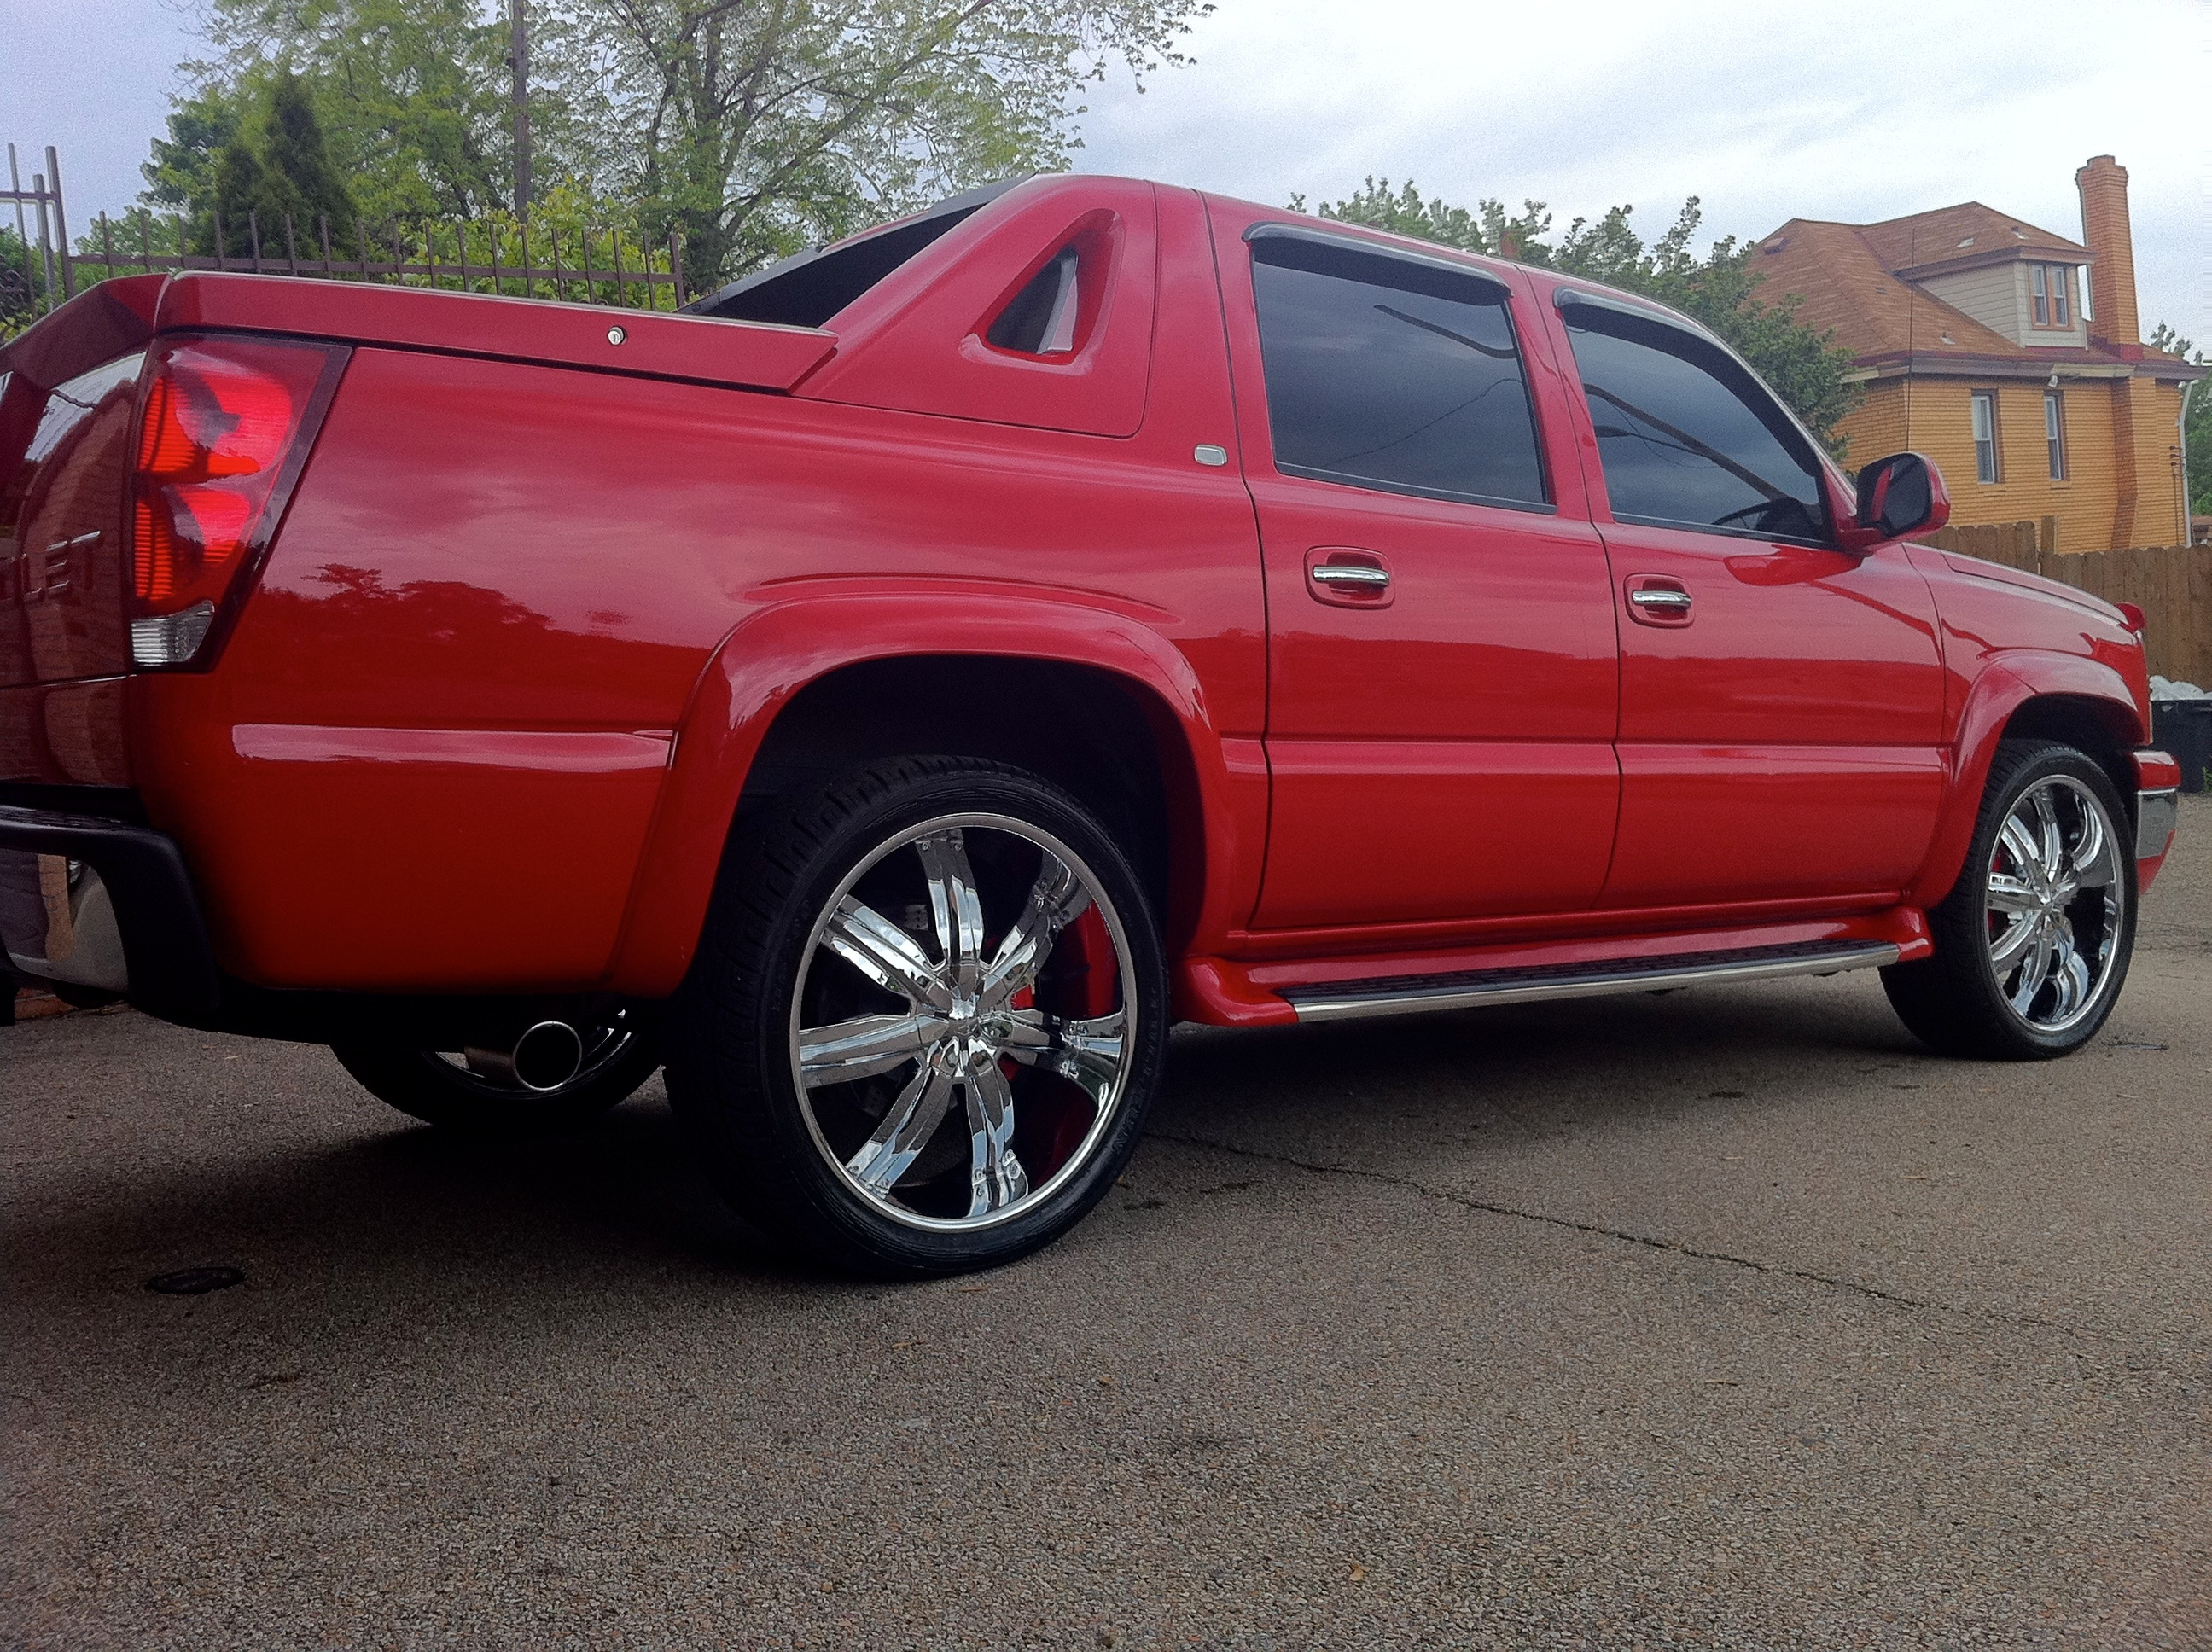 regencytruck 2006 Chevrolet Avalanche 14817377